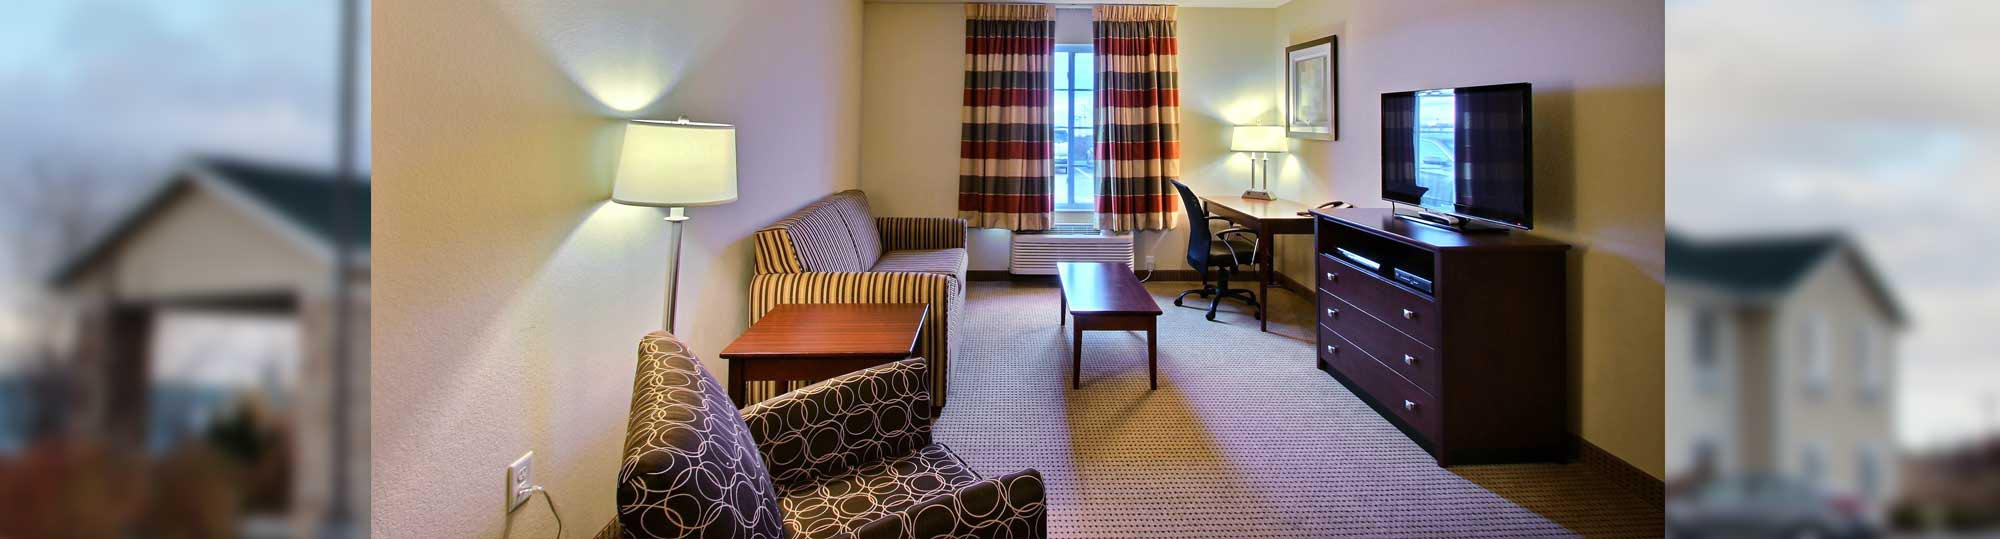 Cobblestone Inn and Suites Oshkosh